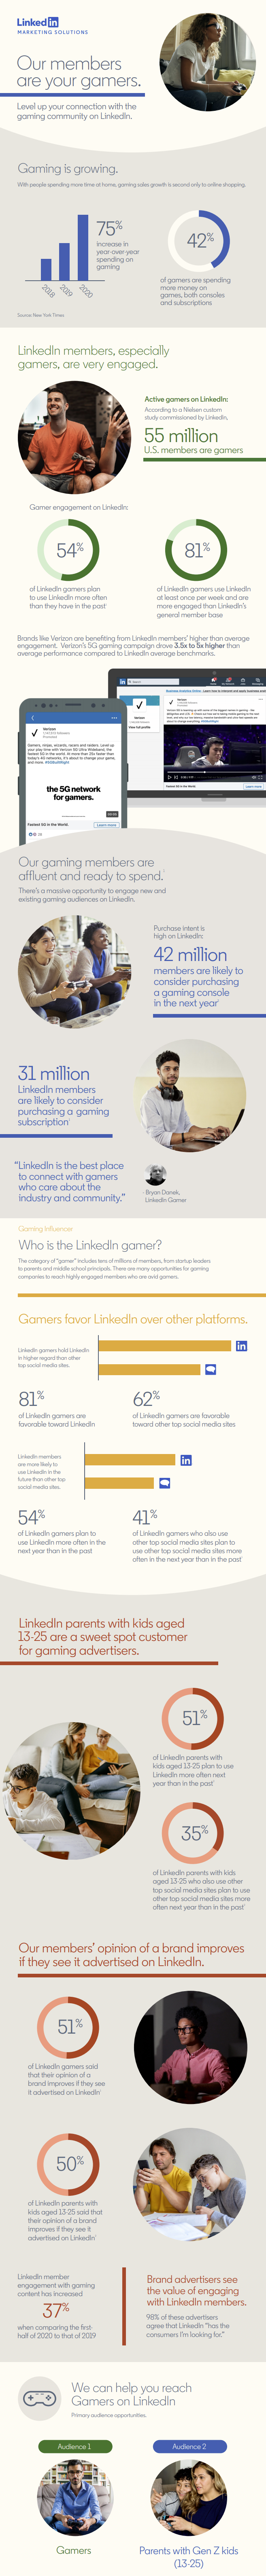 Infographic with insights on targeting gamers on LinkedIn.